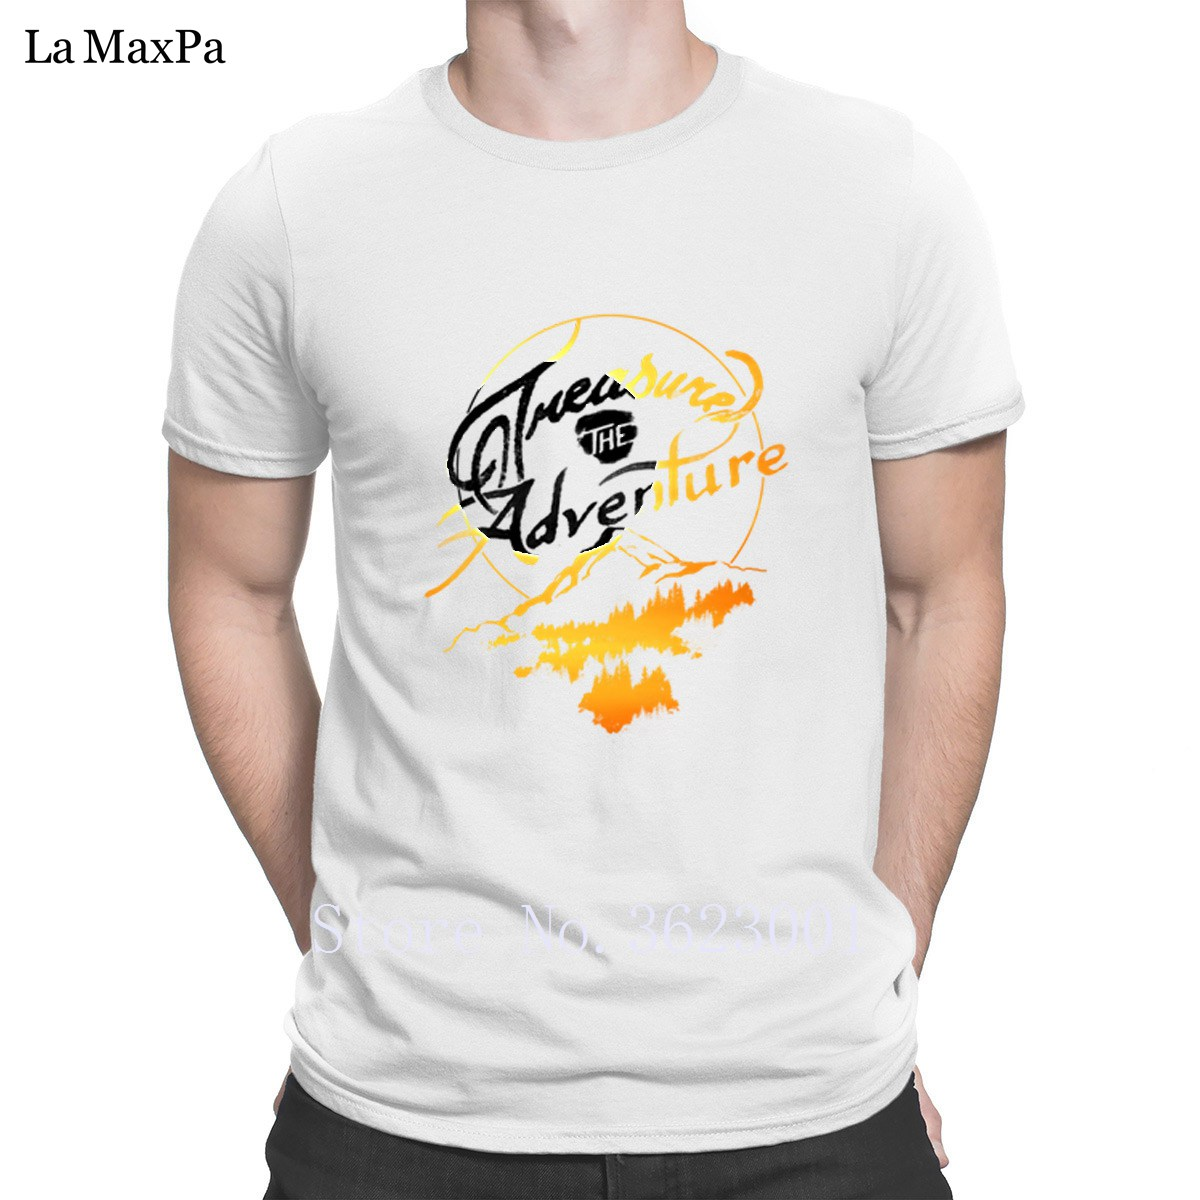 a4f29128 Design Comical T Shirt Treasure The Adventure Men's T Shirt Outfit Tshirt  For Men Natural Tee Shirt Mens 100% Cotton Pop Top Tee-in T-Shirts from  Men's ...